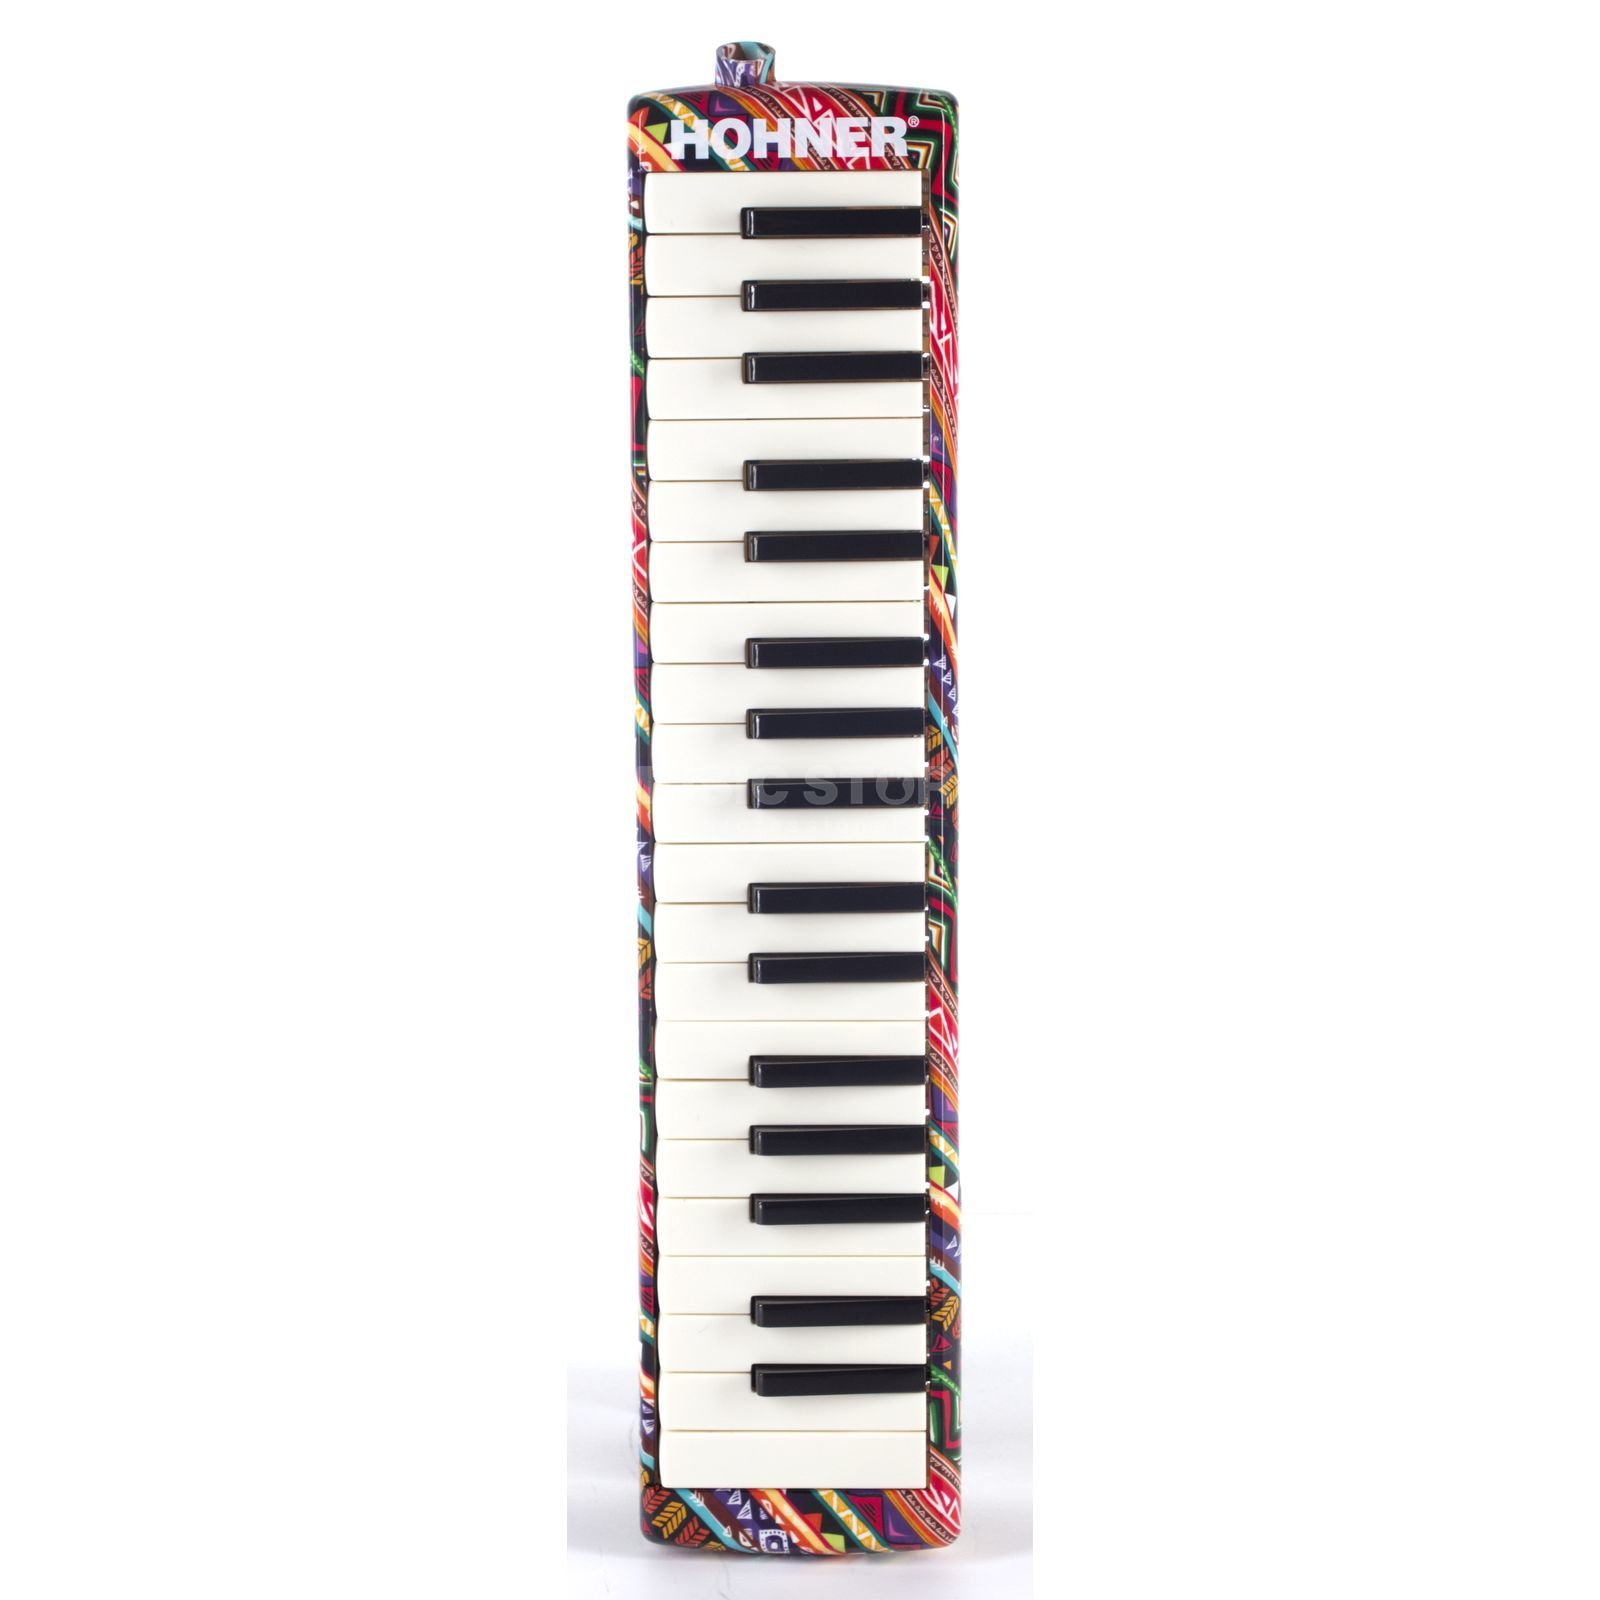 Hohner Melodica Airboard 37 inkl. Softcase Produktbild